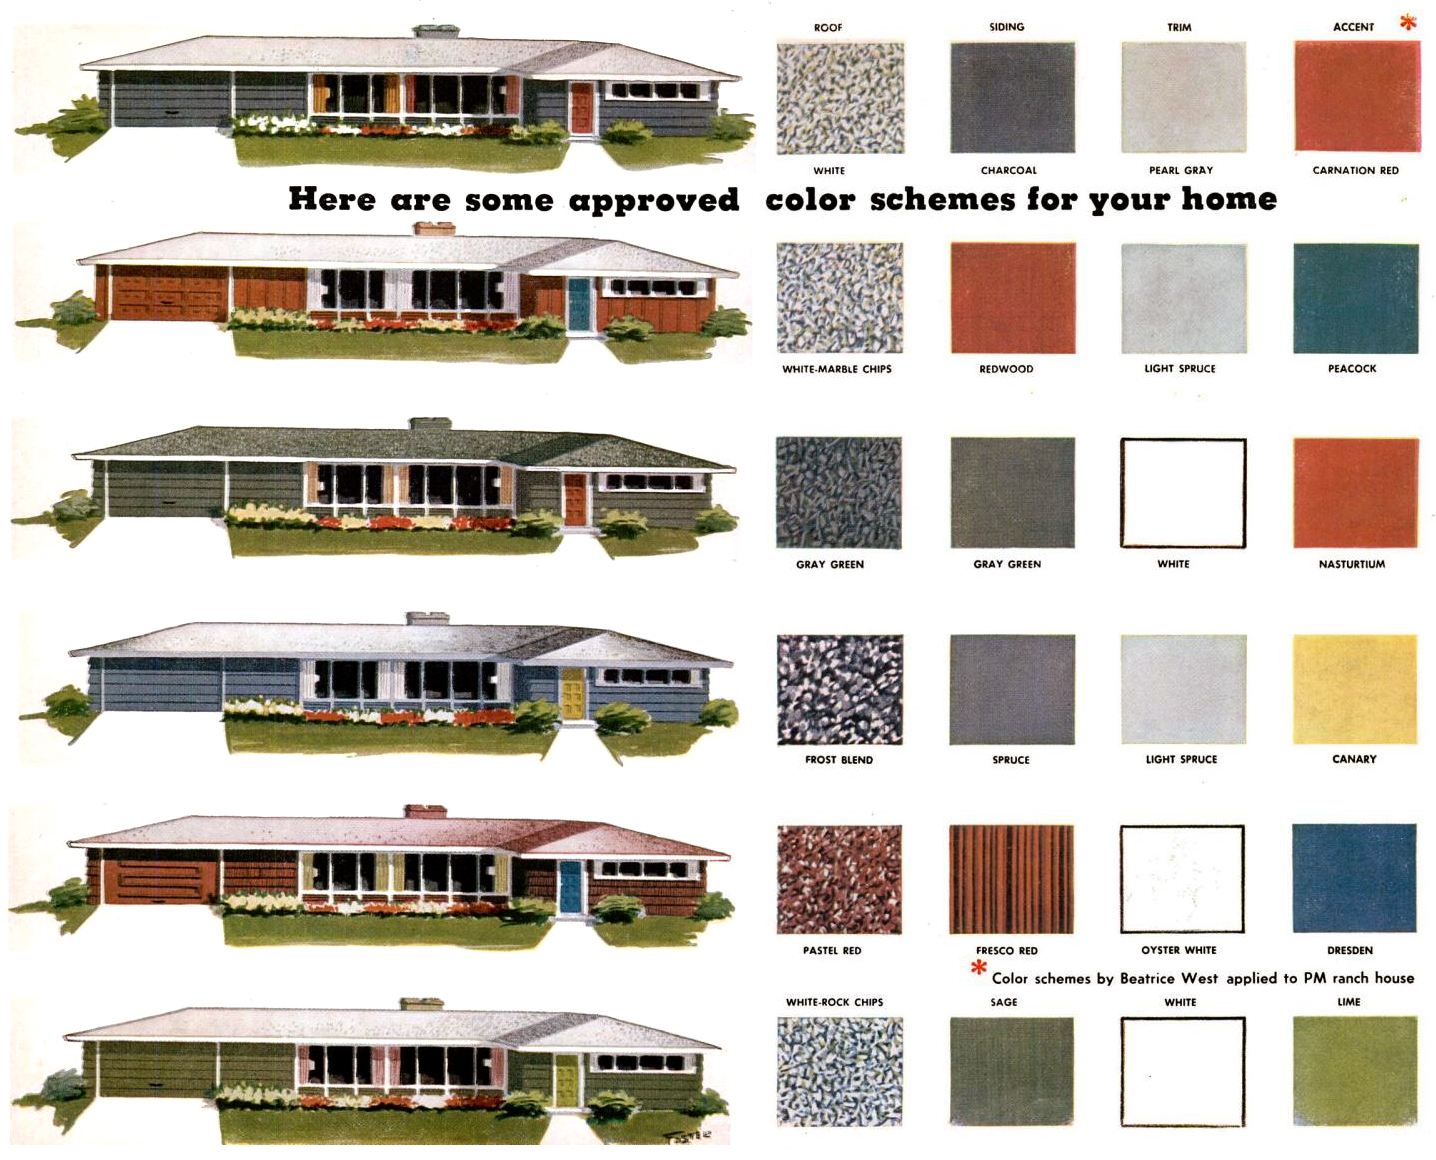 Exterior Paint Schemes On Pinterest Spanish Tile Exterior Paint Colors And